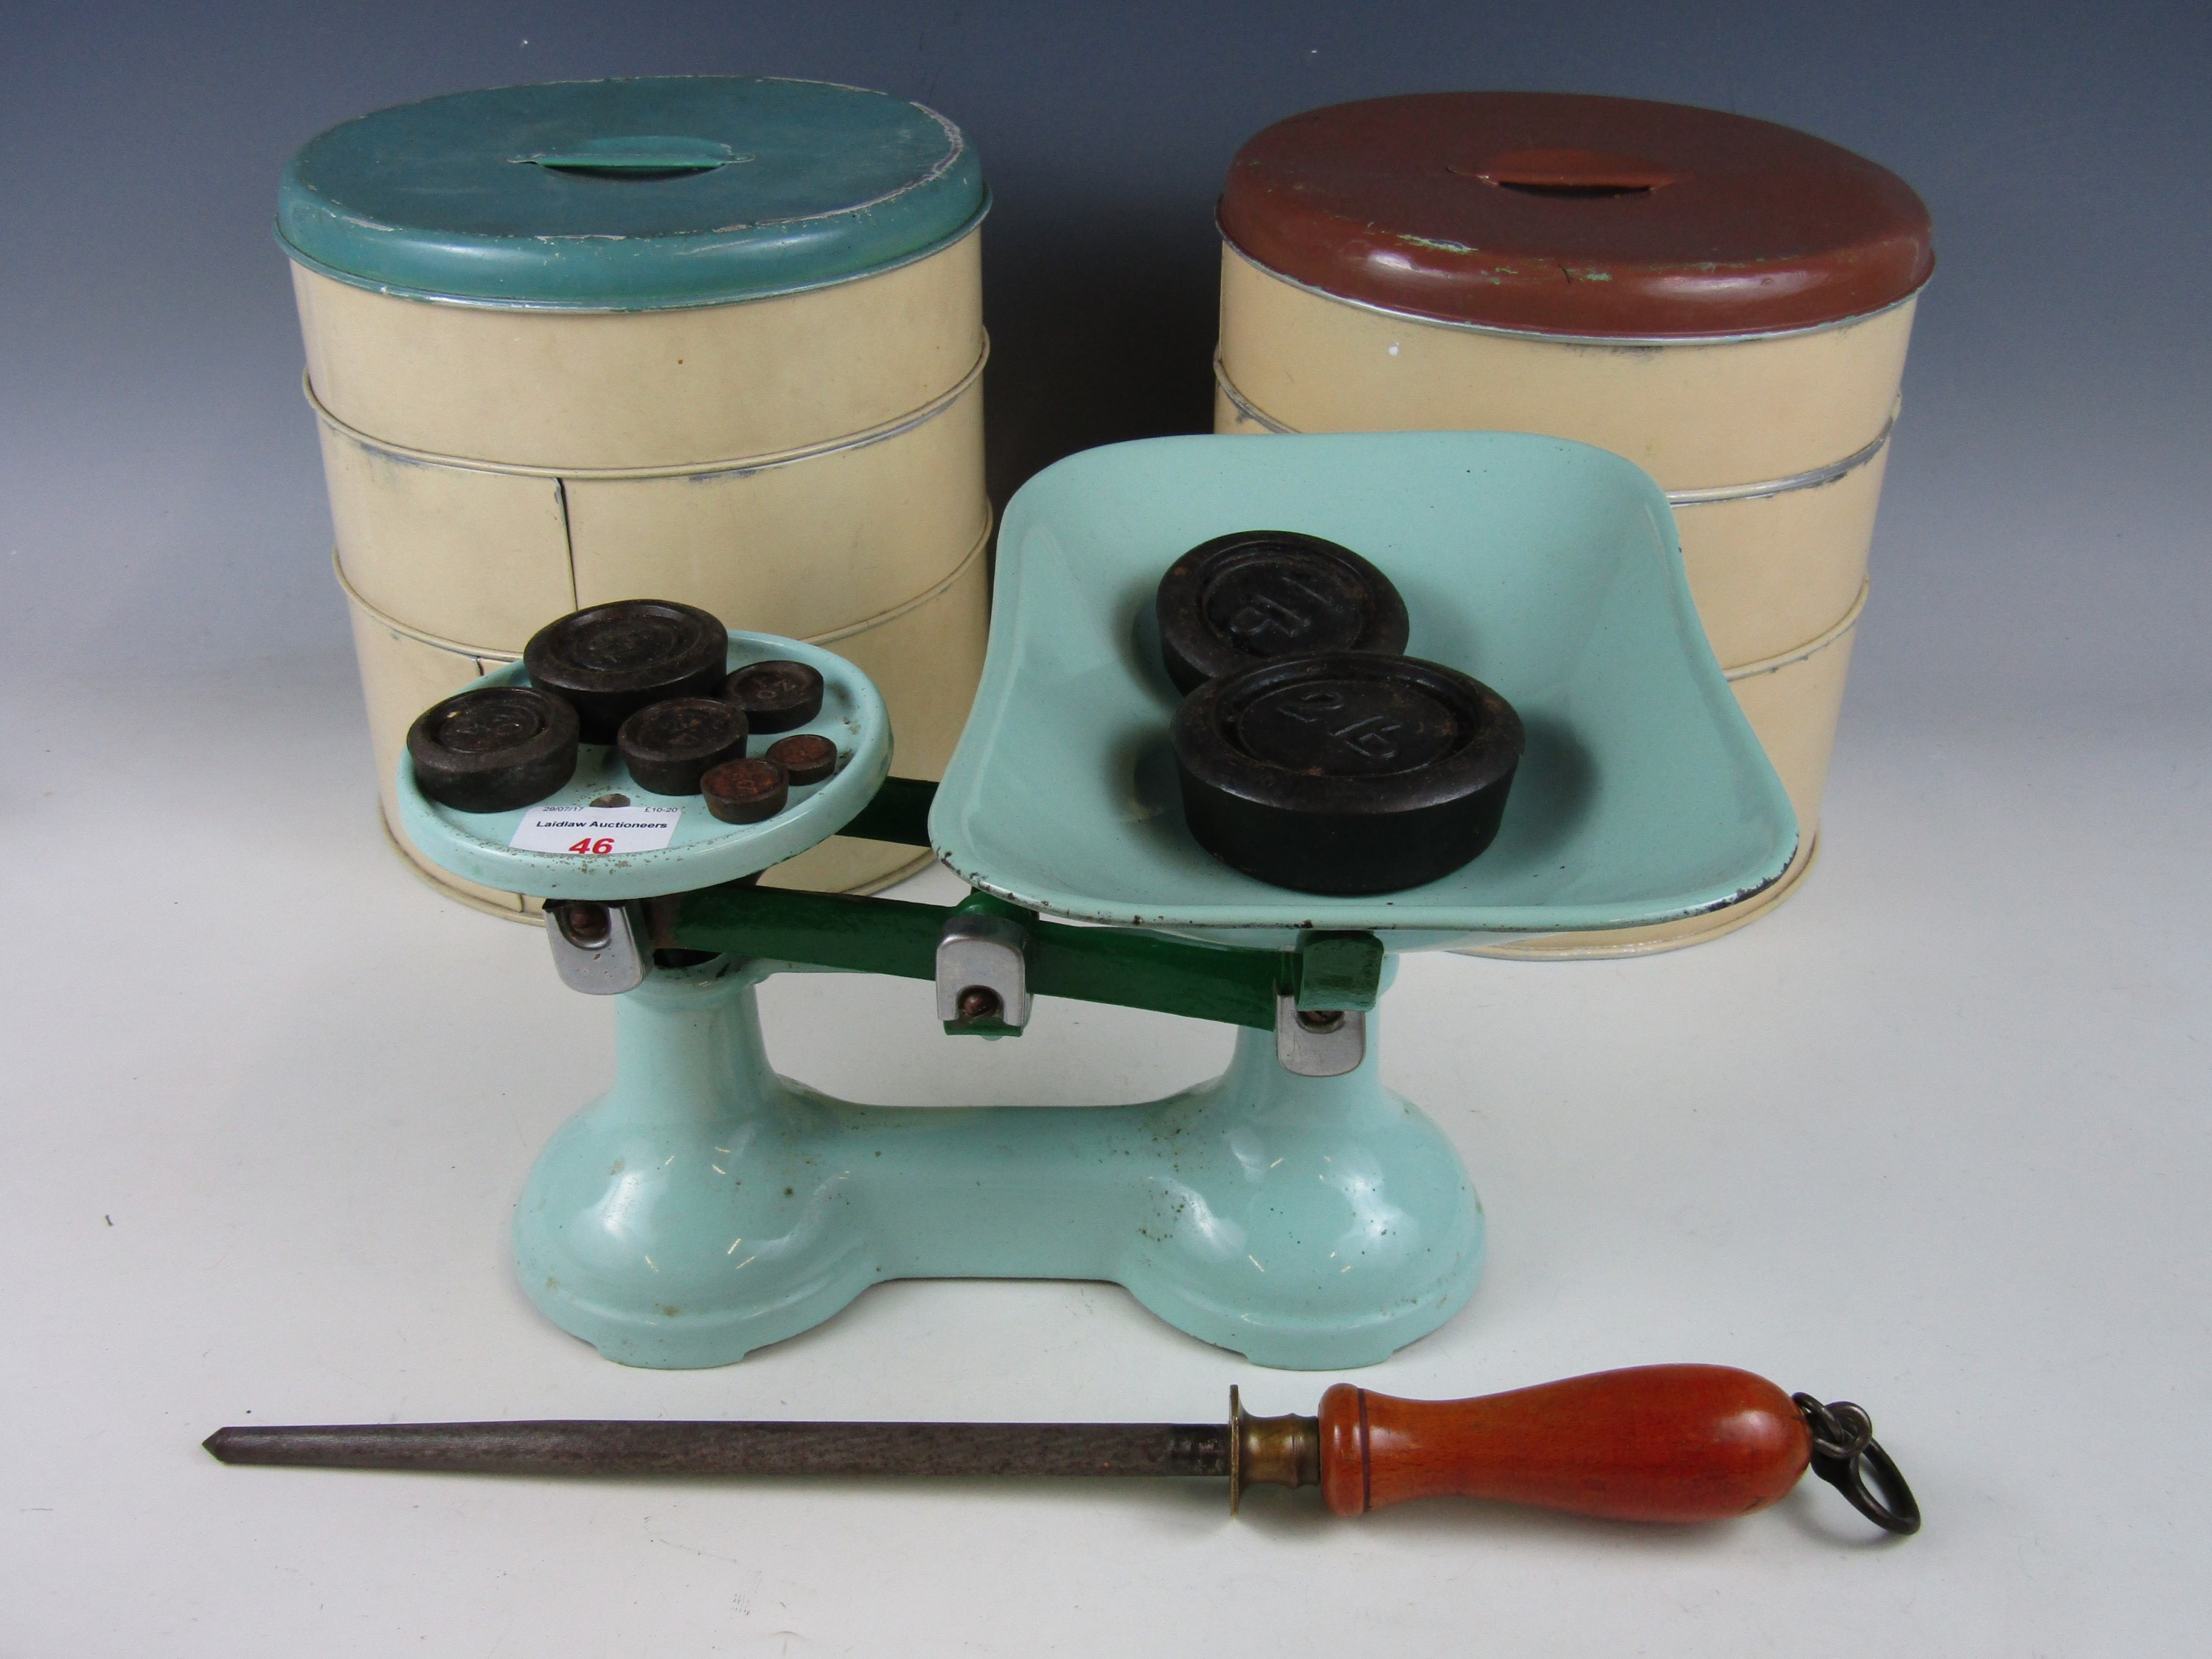 Lot 46 - Two vintage Tala Ware three tier cake tins, together with a set of vintage scales and weights and